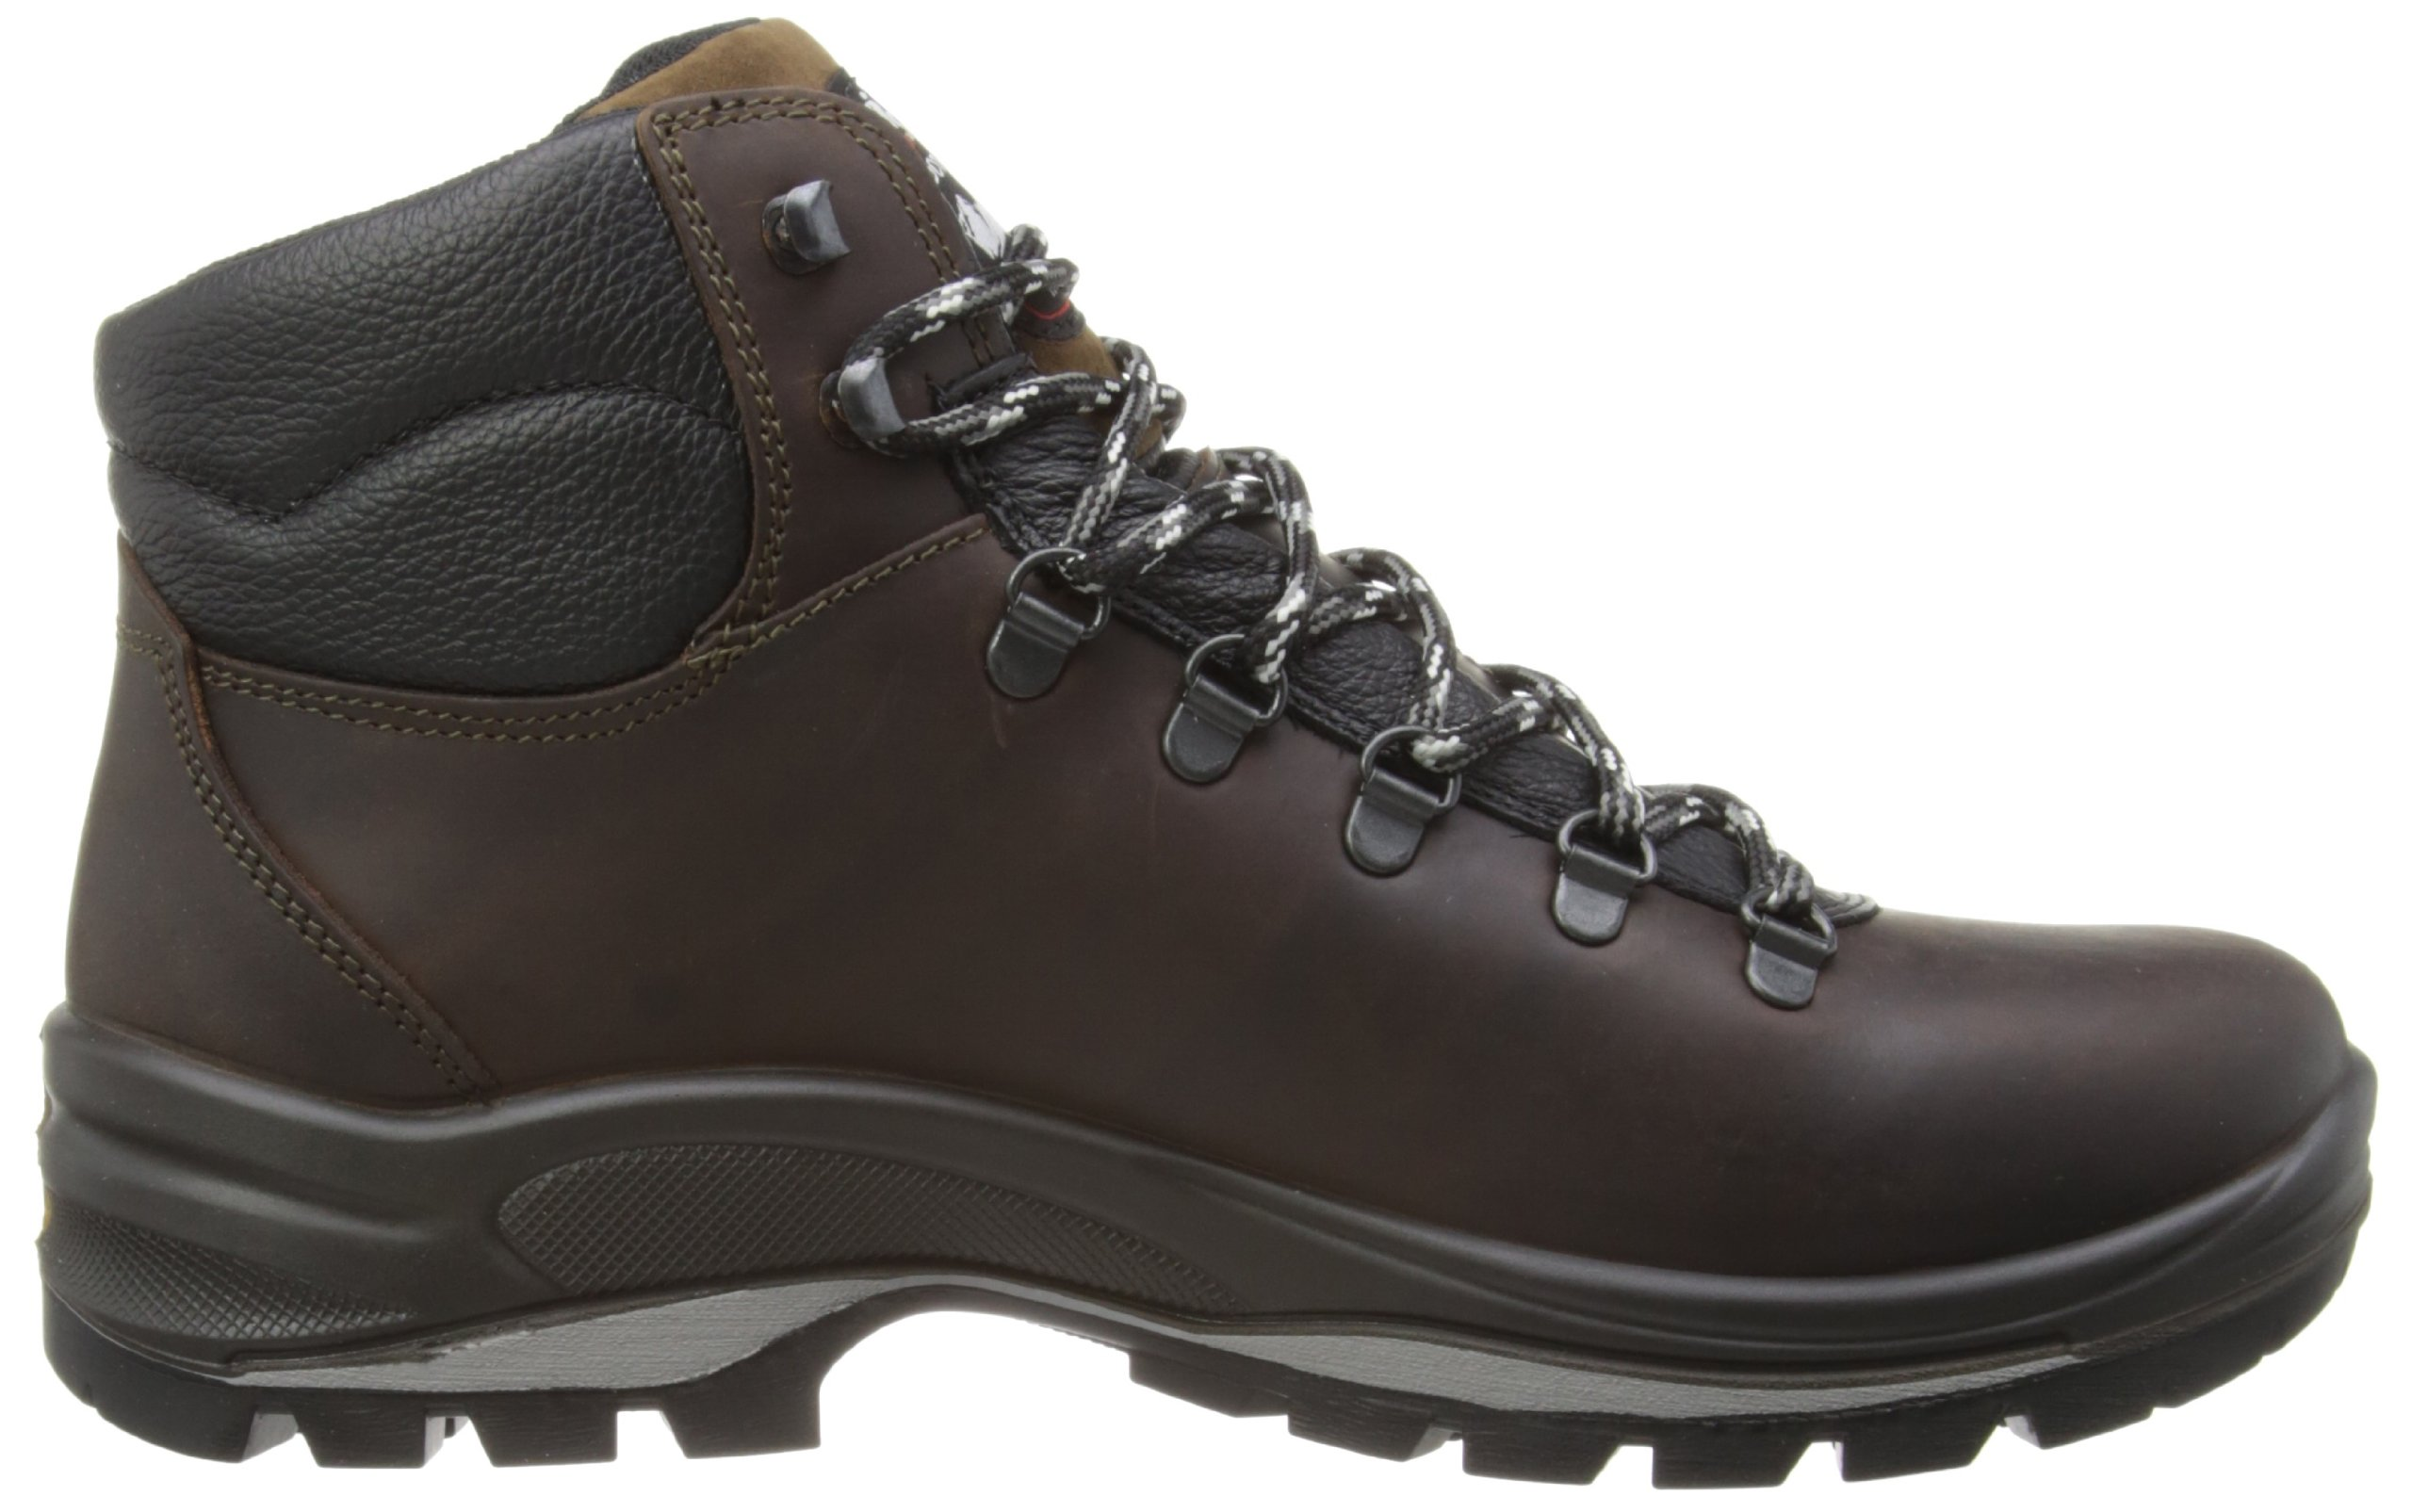 Grisport Unisex-Adult Fuse Trekking and Hiking Boots 6